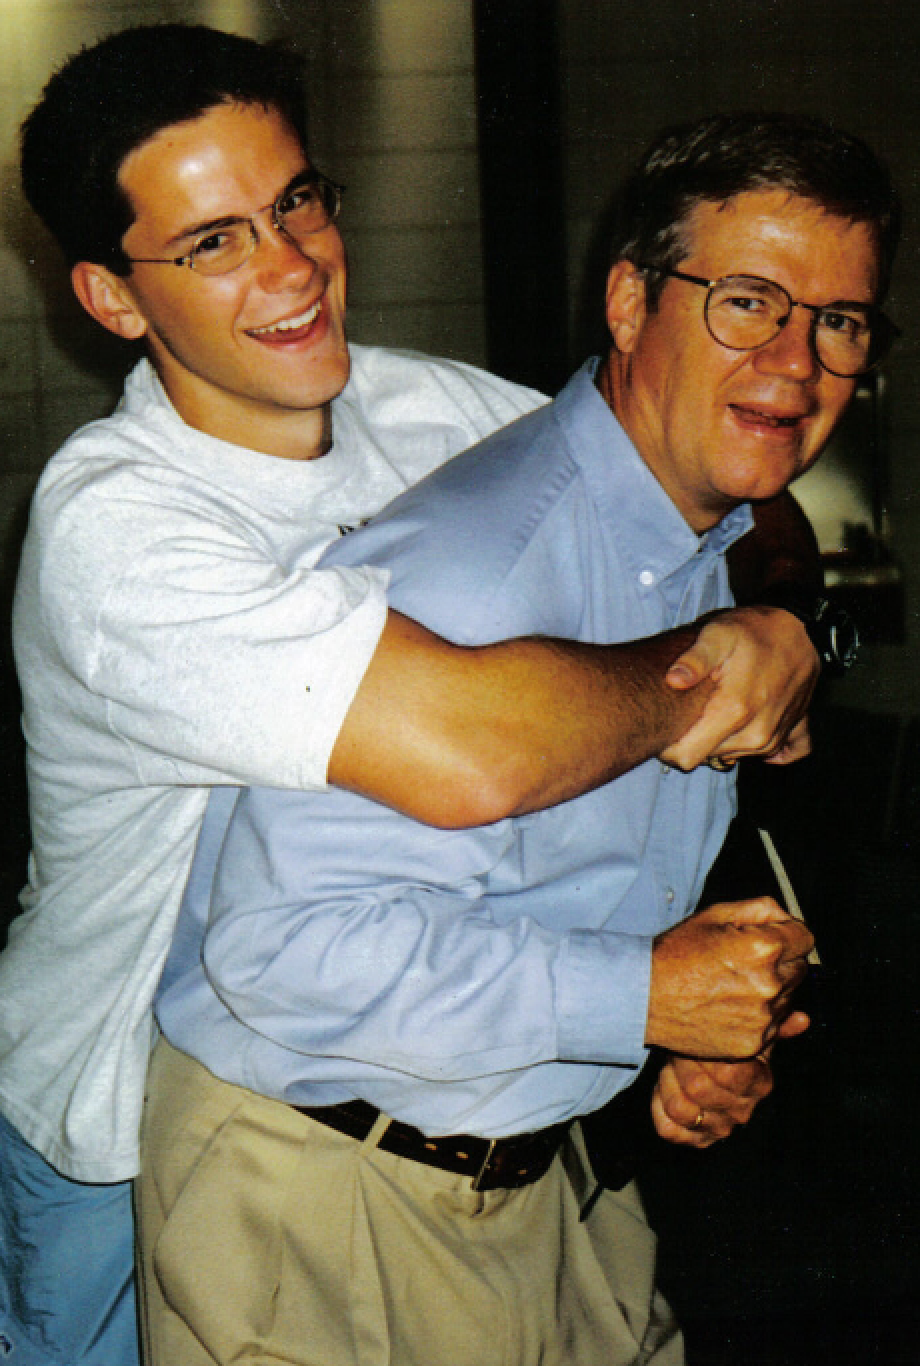 This picture was taken of dad and I sometime in 1999, when I was 17.